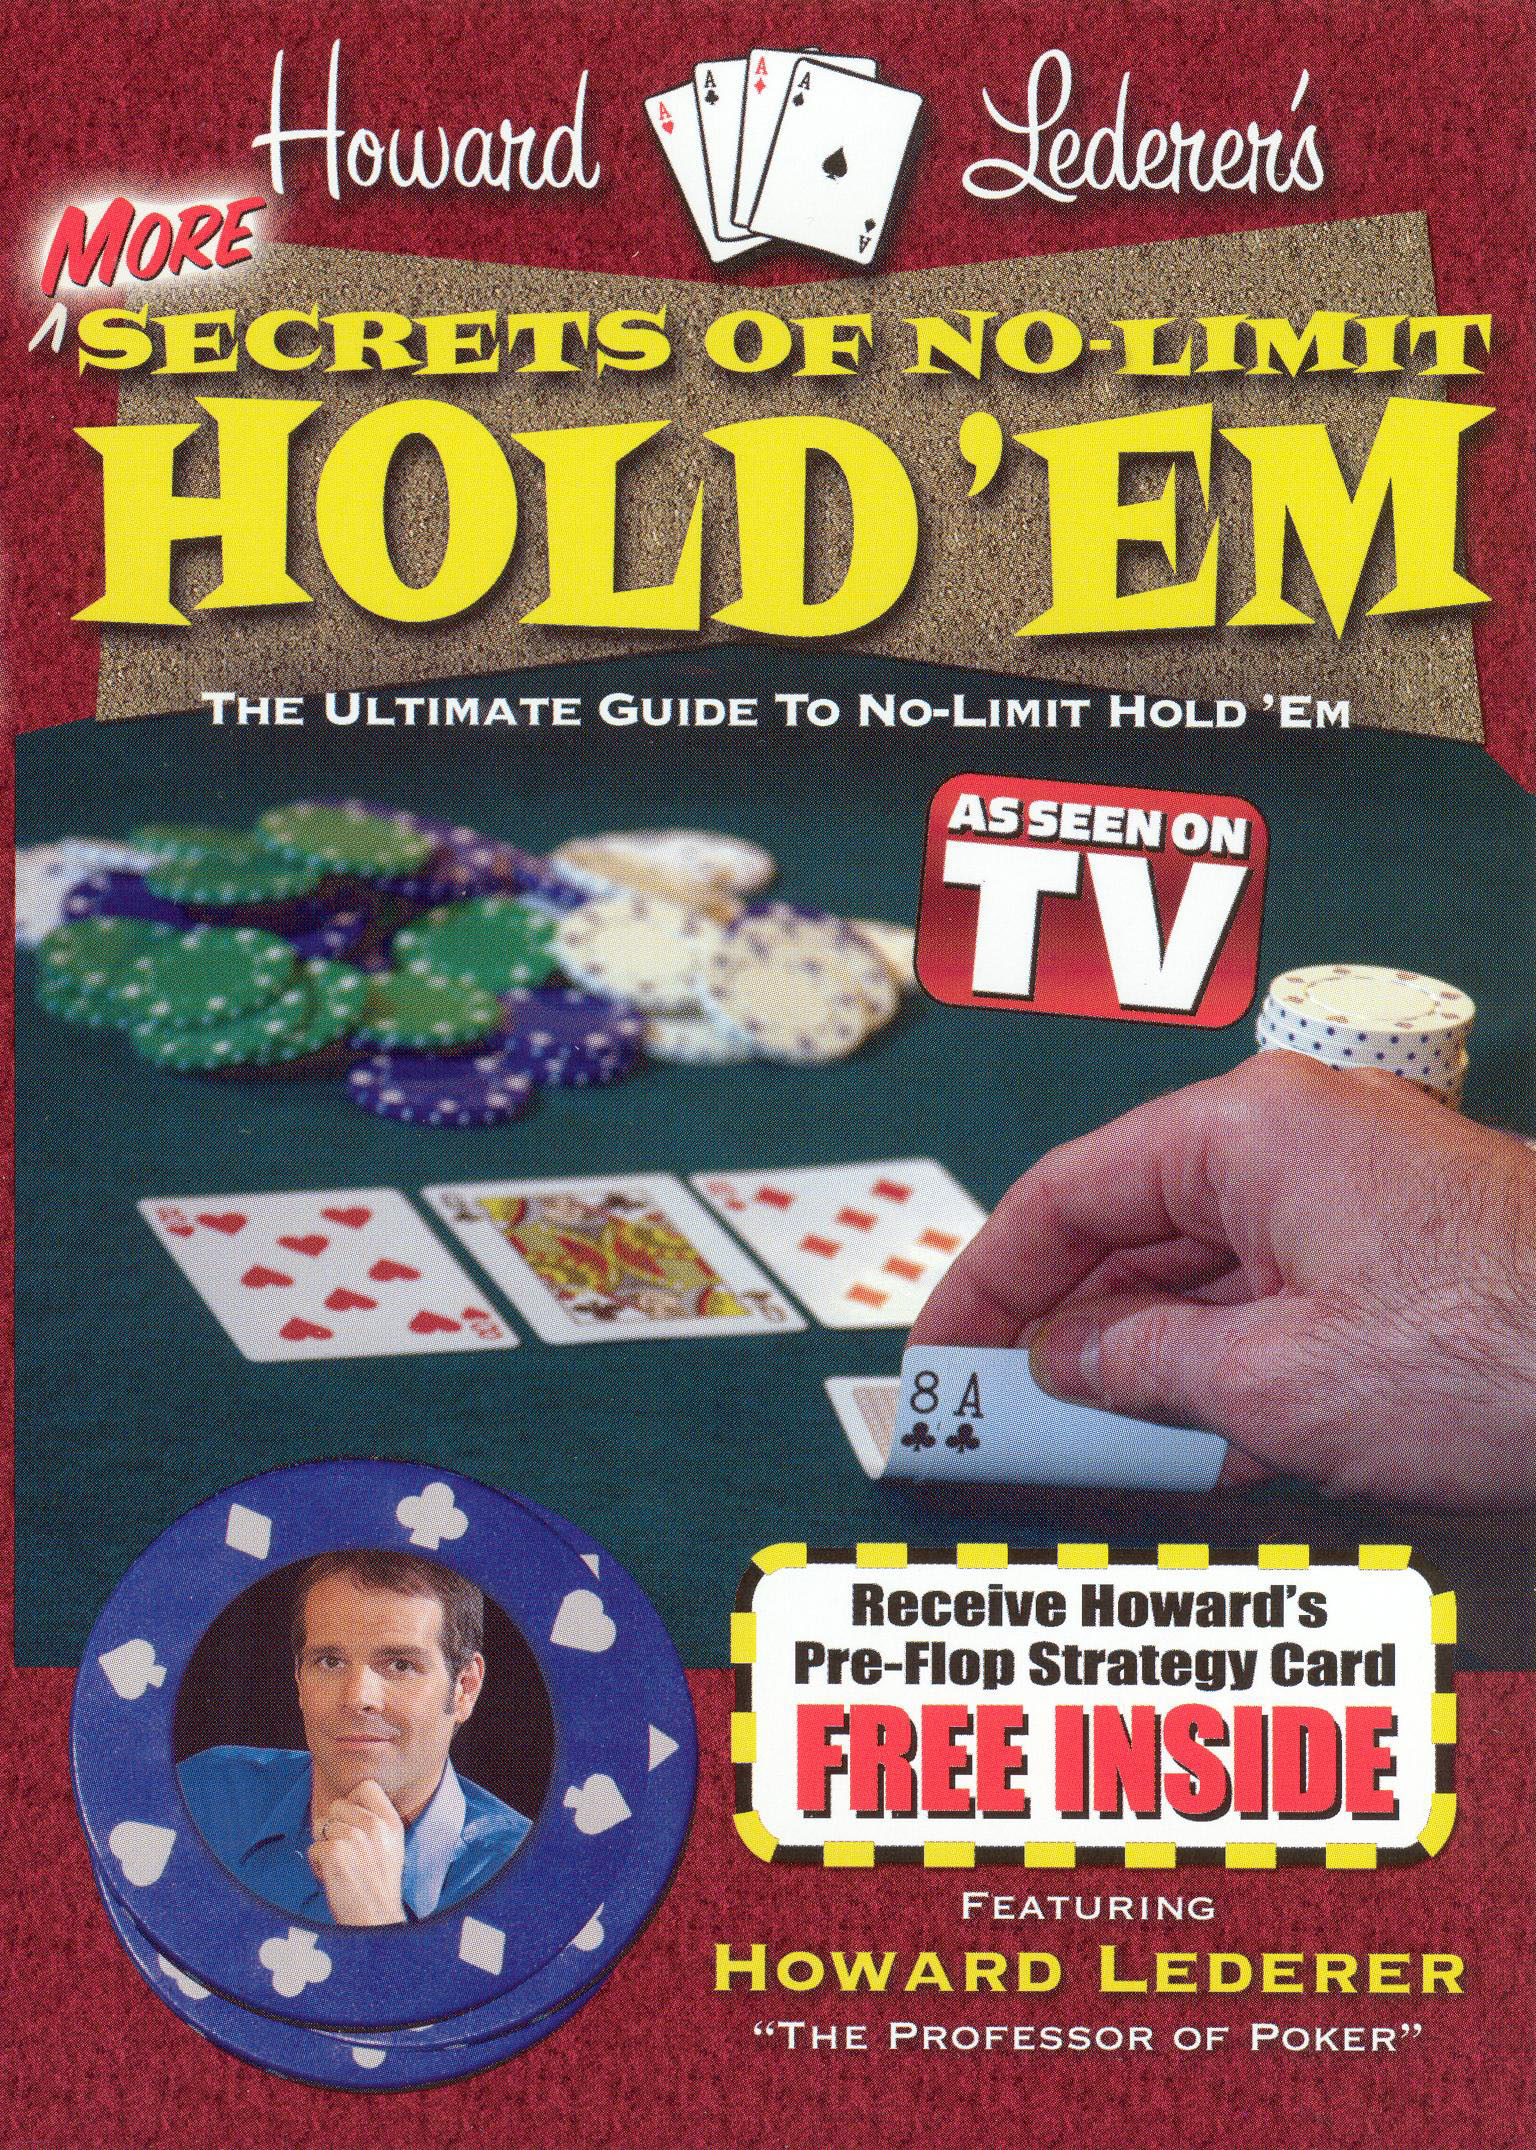 Poker: More Secrets of No Limit Hold 'em